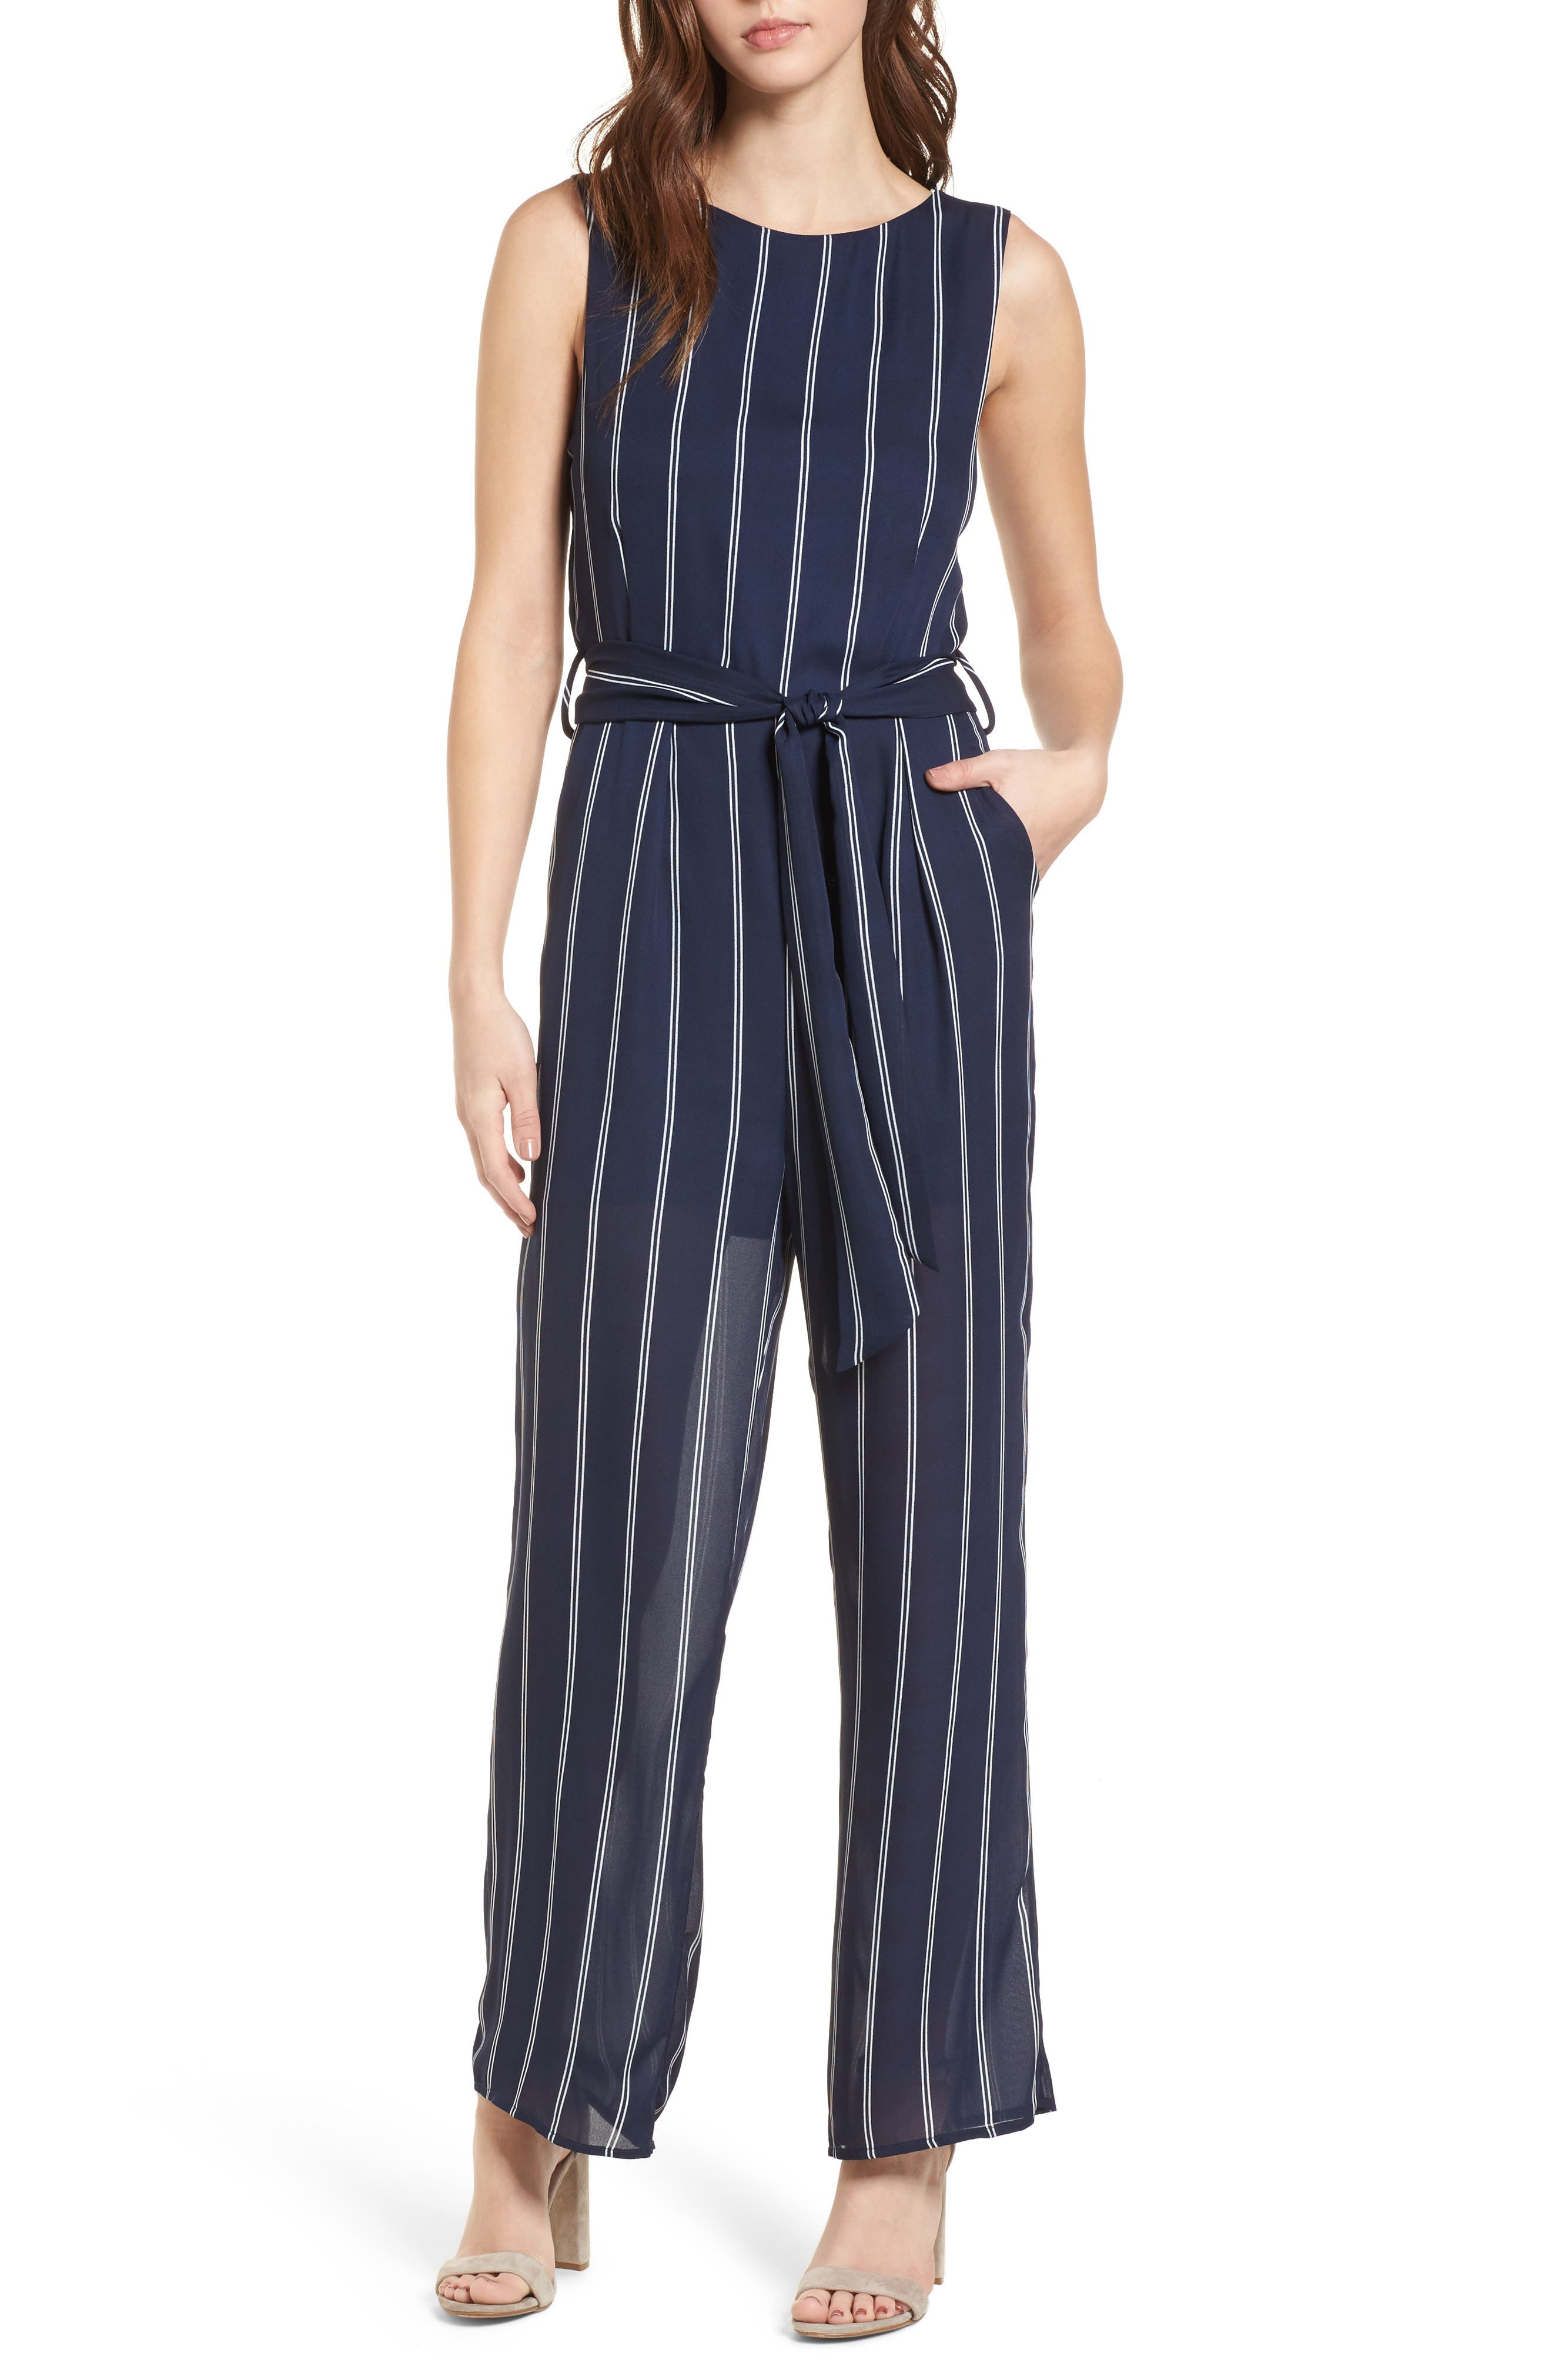 One Clothing Stripe Jumpsuit